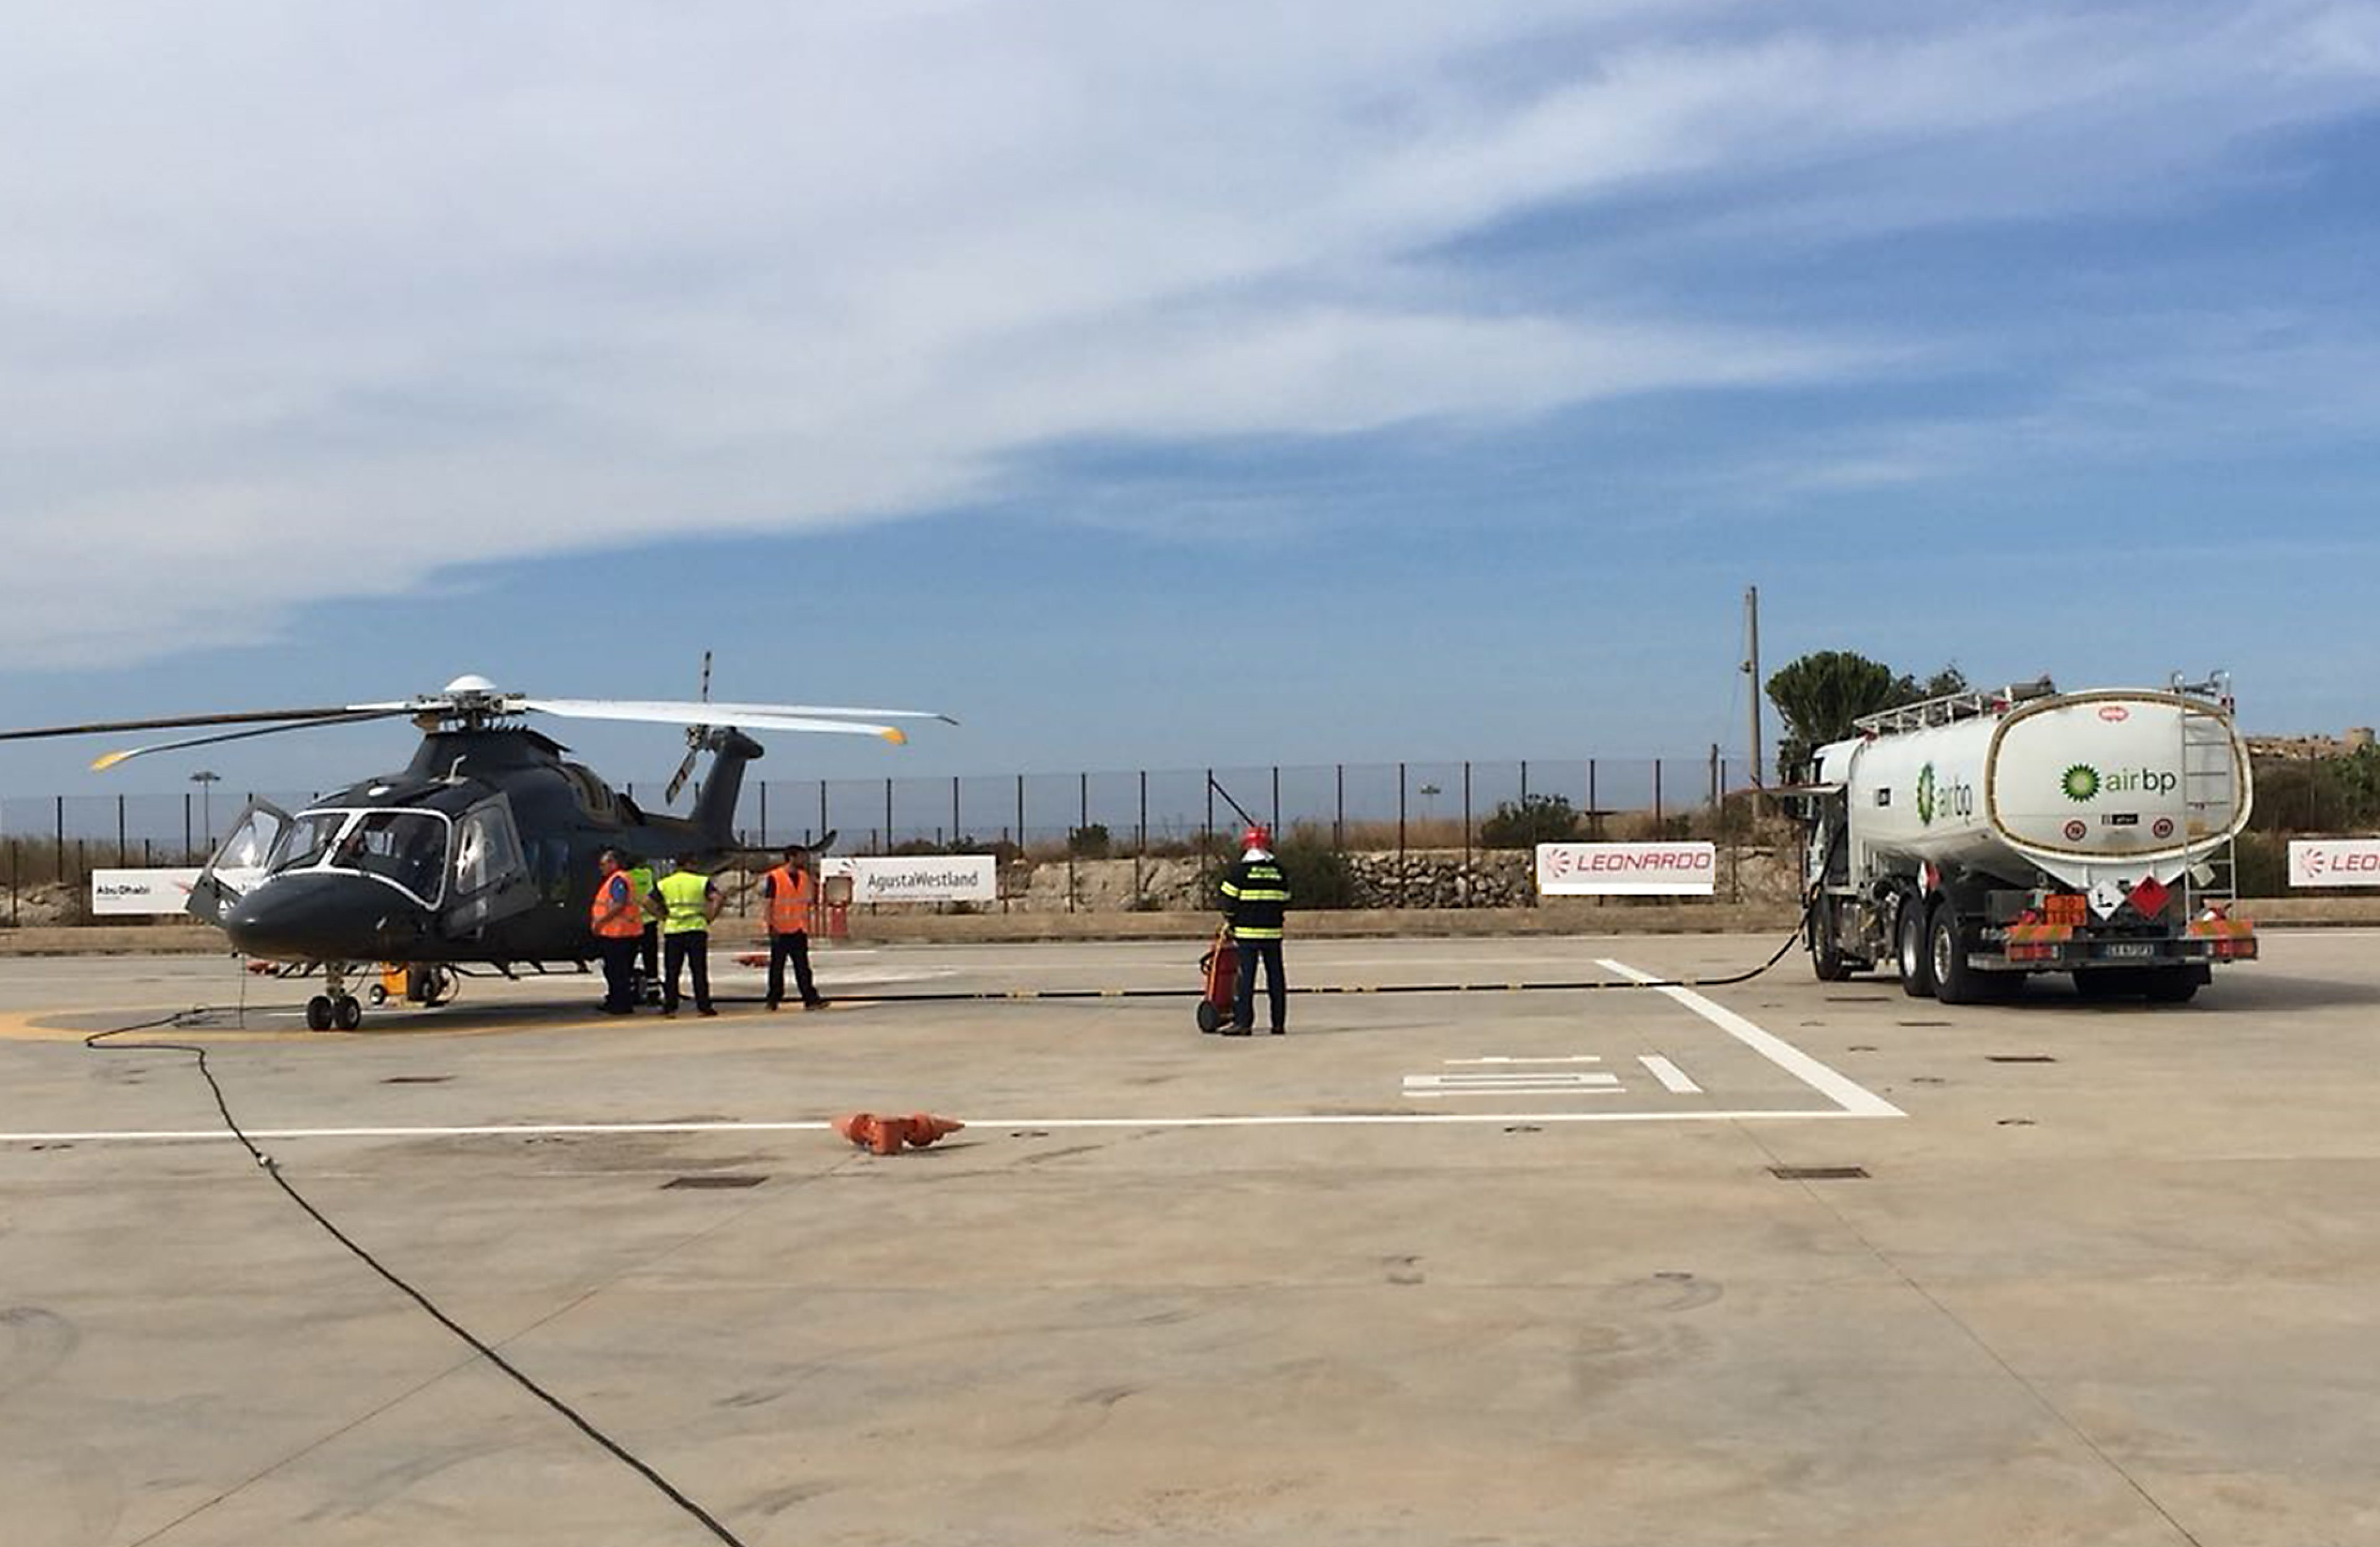 Operators refuelling a helicopter and Air BP tanker